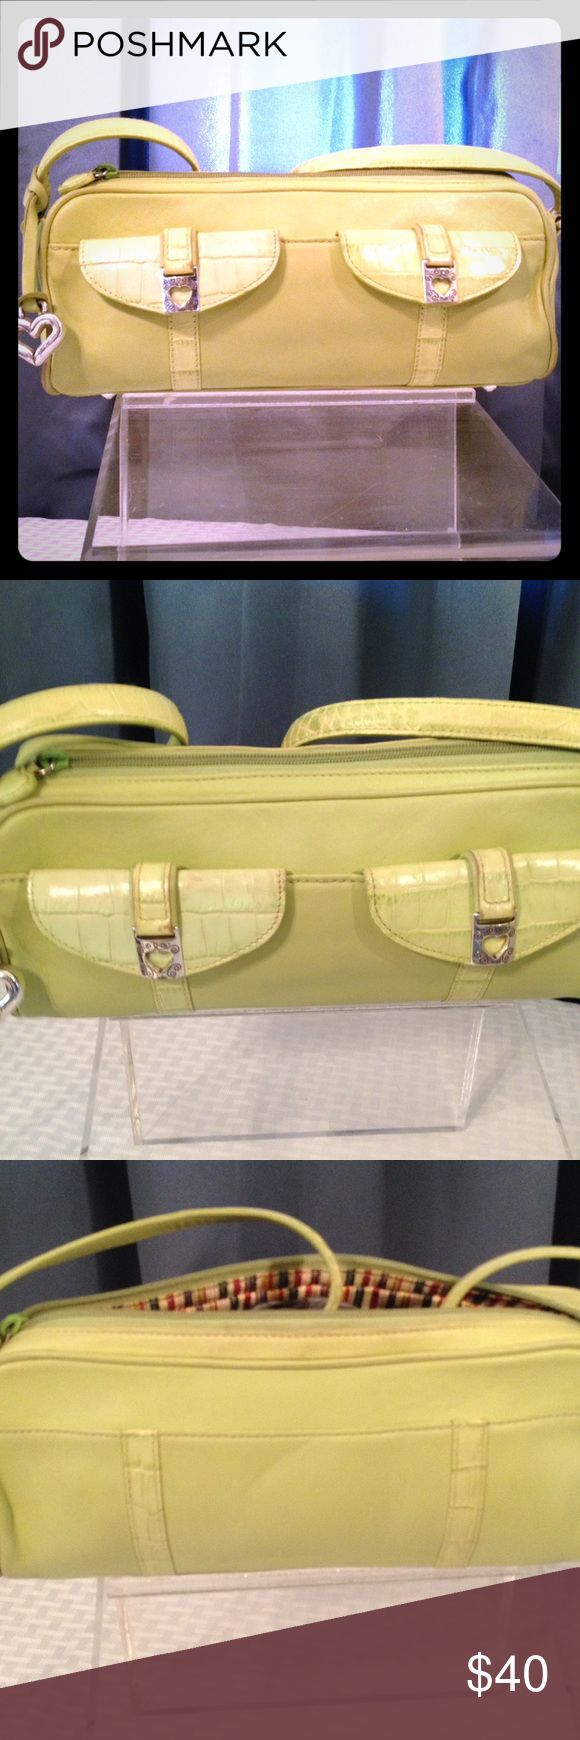 Brighton Purse with dust bag Brighton Purse Green in color with Dust cover Brighton Bags